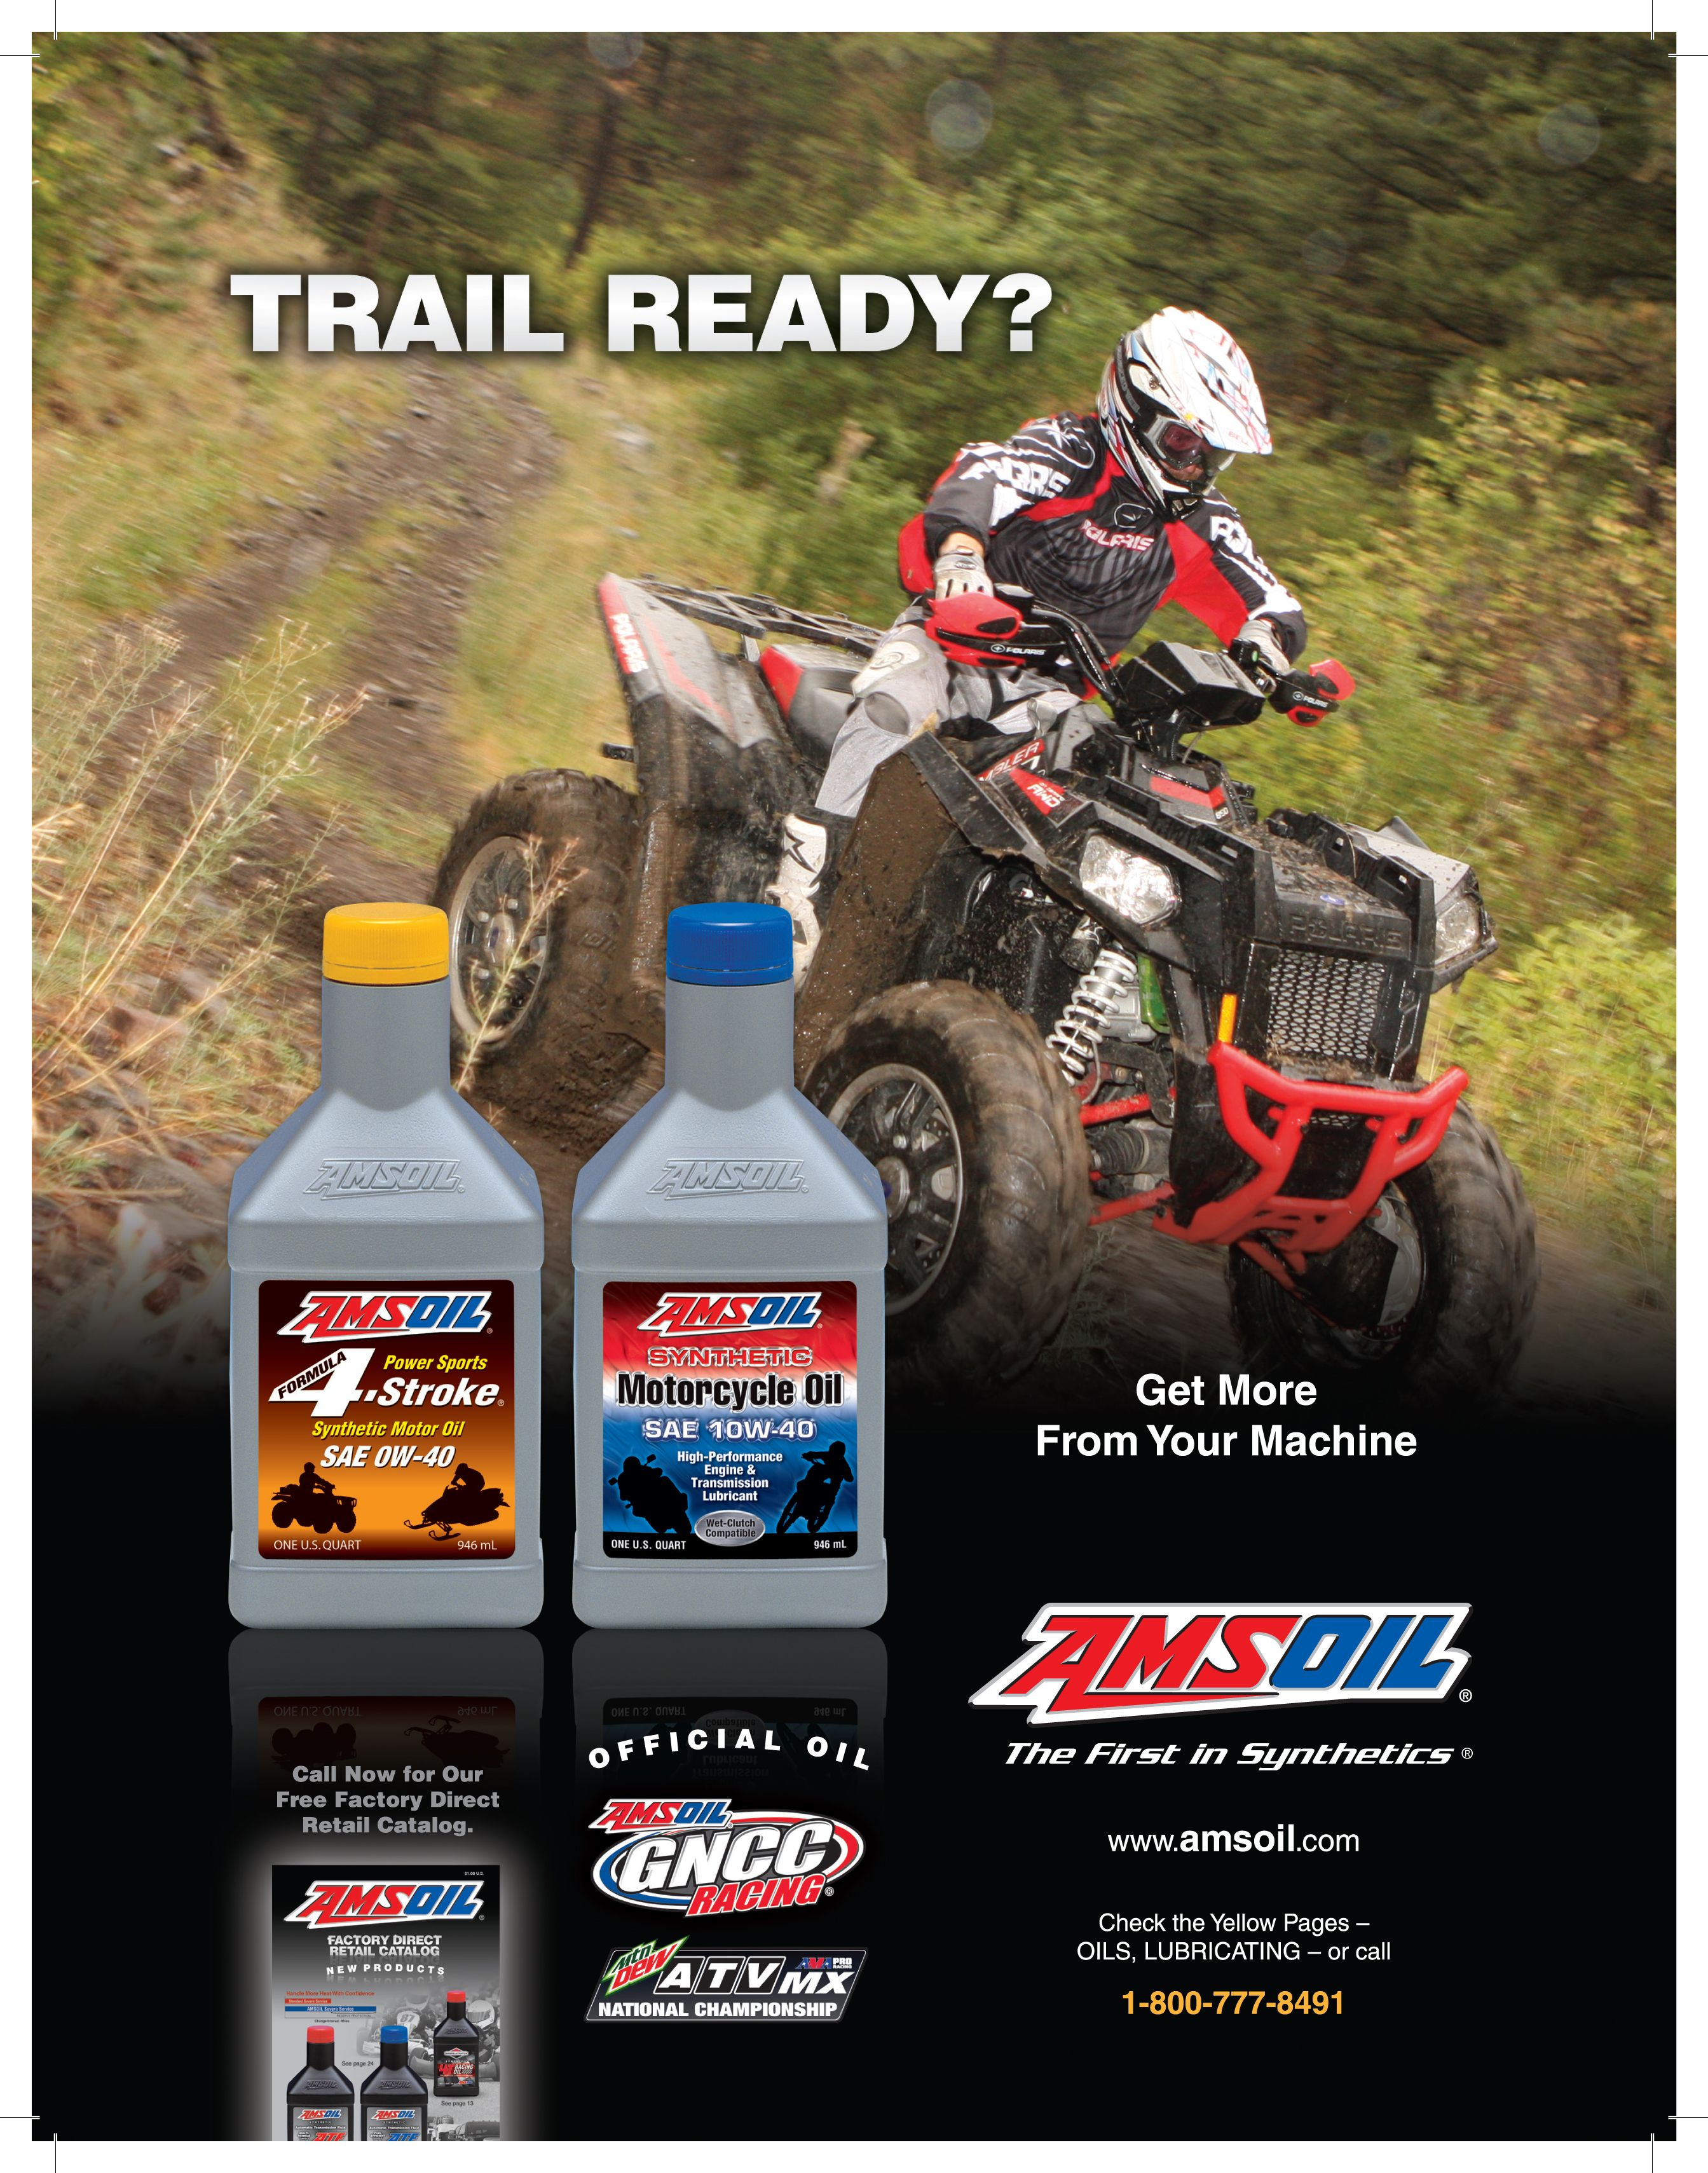 Amsoil Is Number One In Synthetic Oil Make Amsoil Your Next Oil